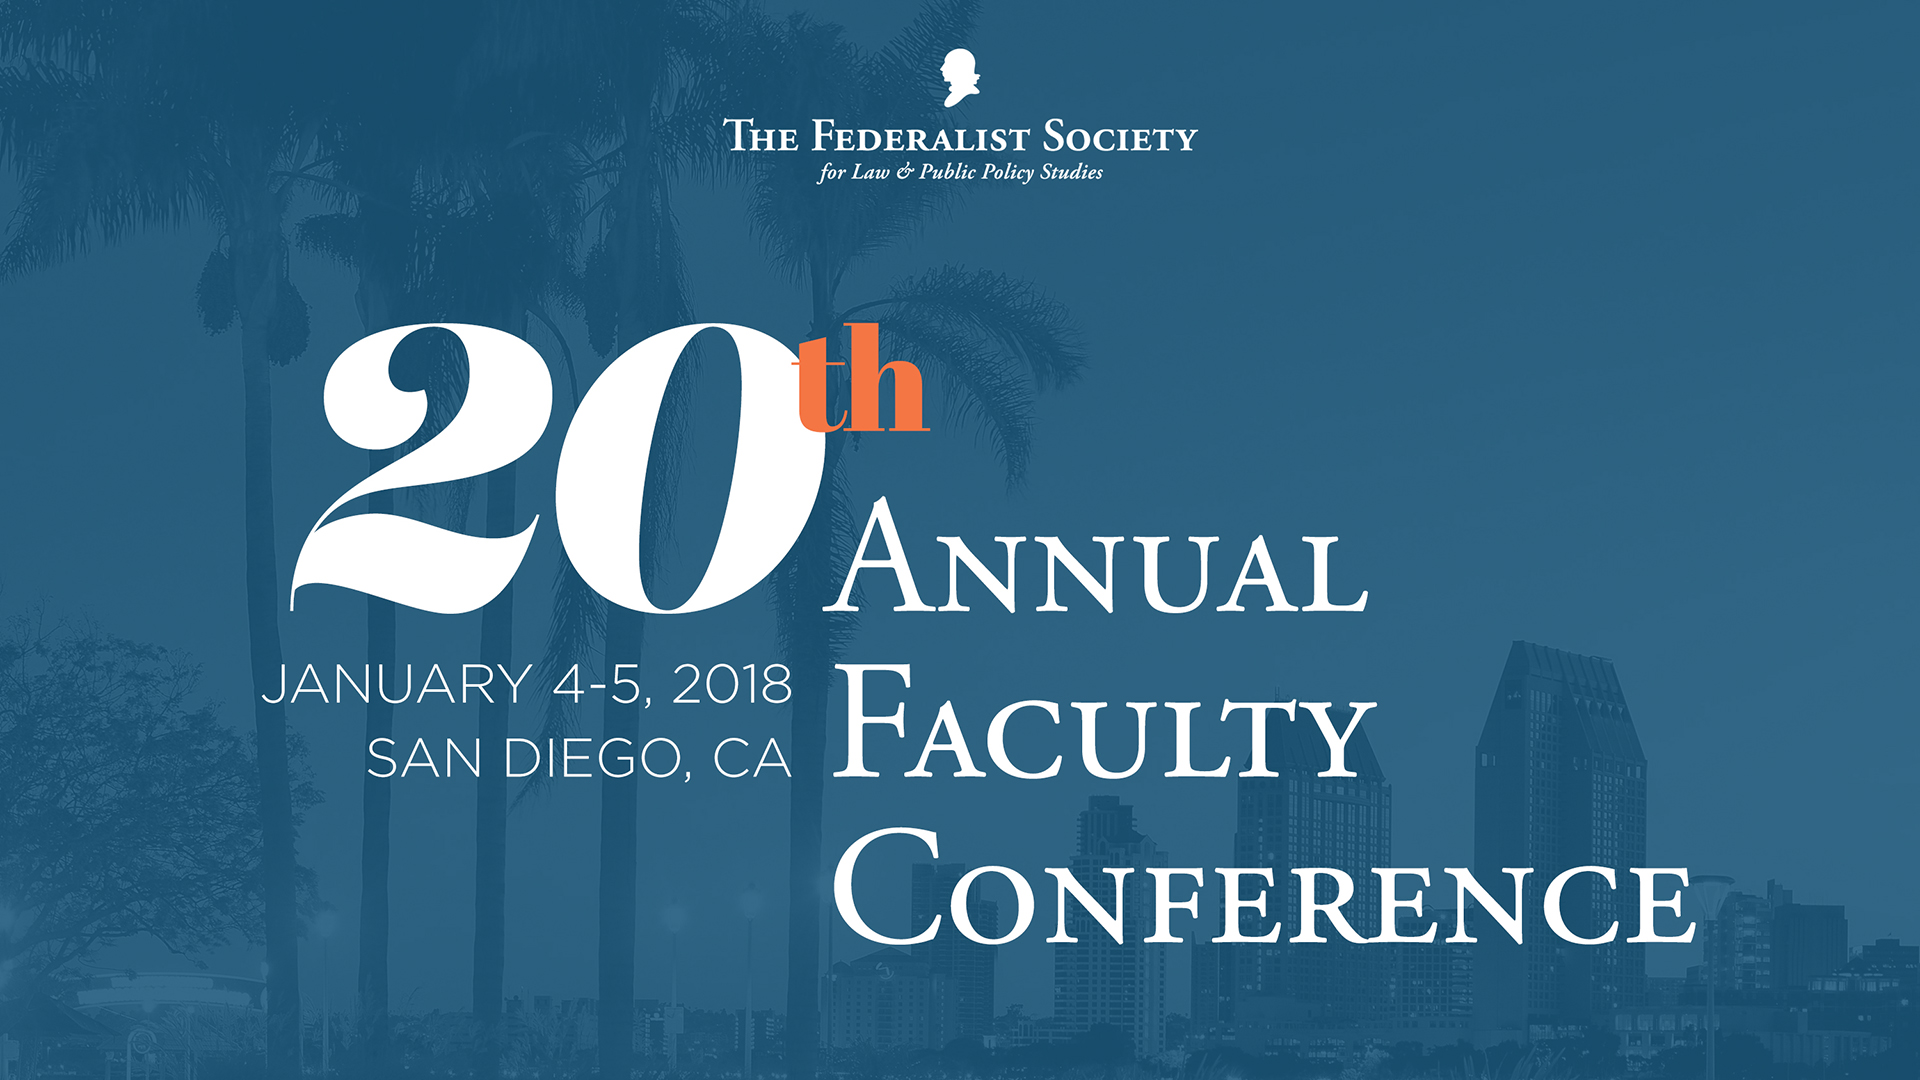 The 20th Annual Federalist Society Faculty Conference Livestream